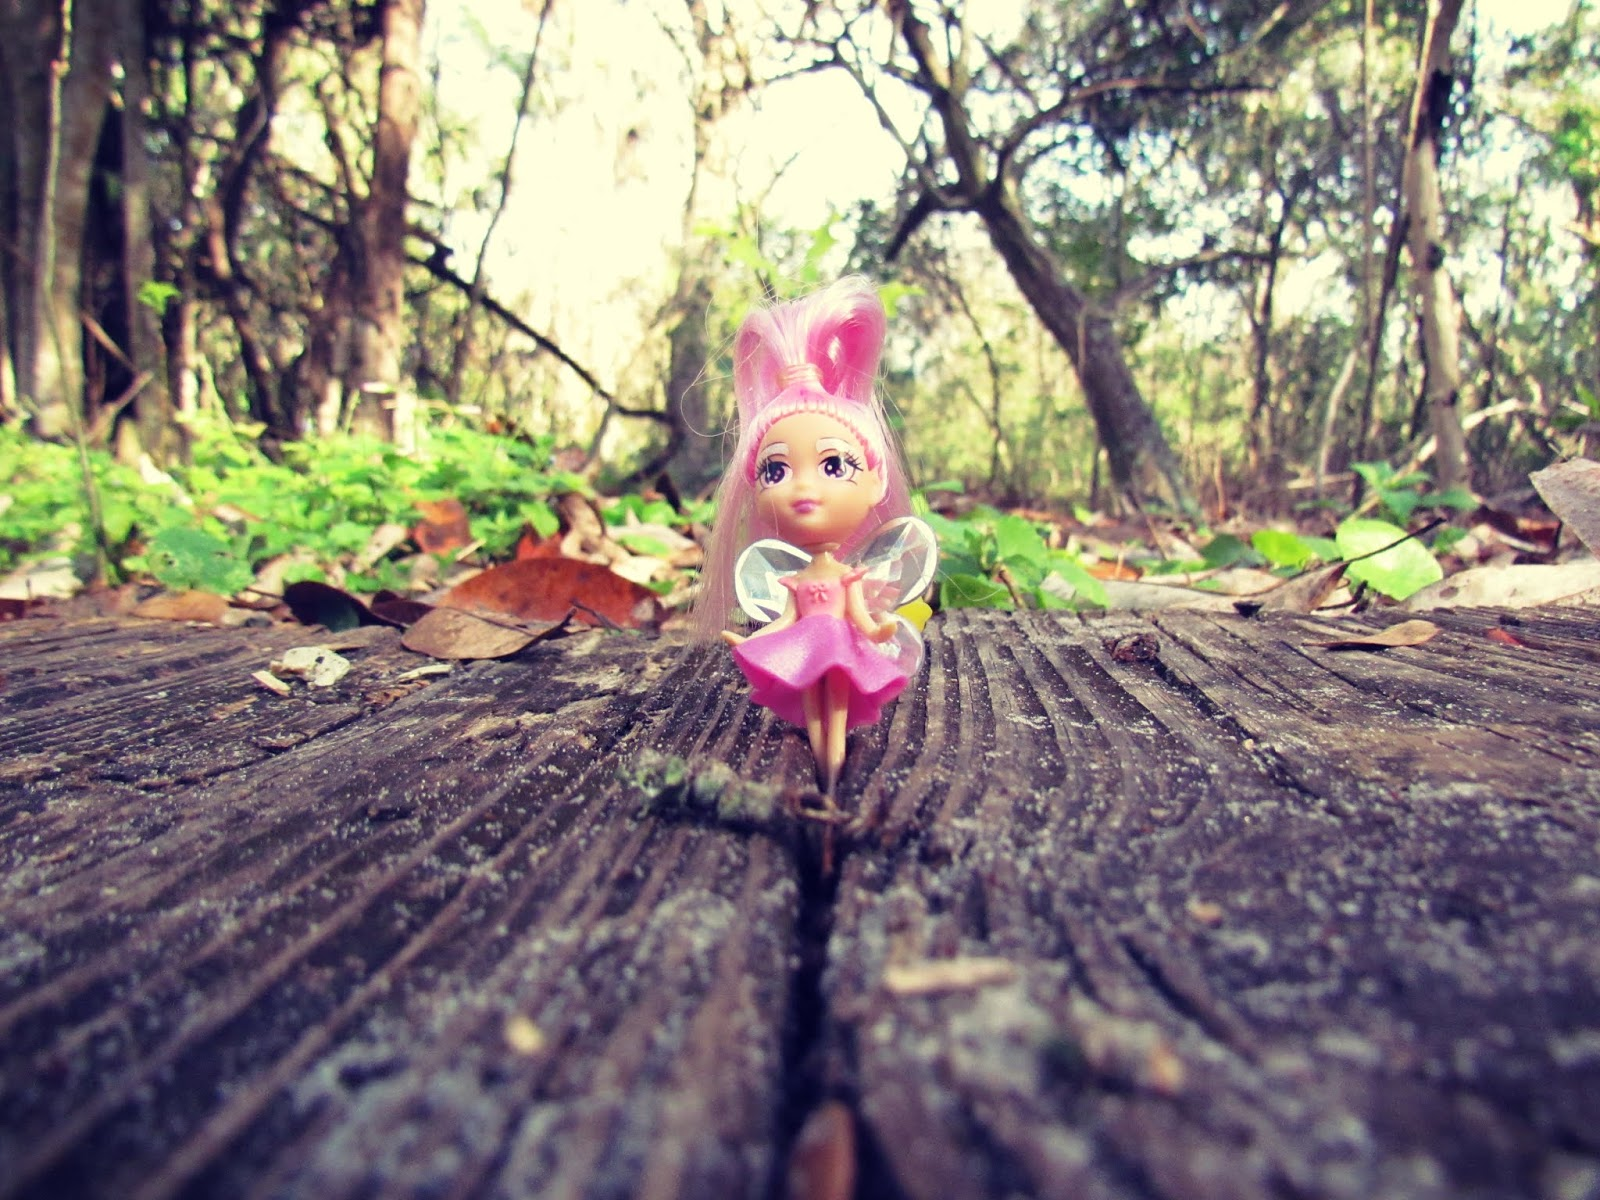 Lost in the Woods Pink Fairy Doll and Ring Set in a Forest Setting